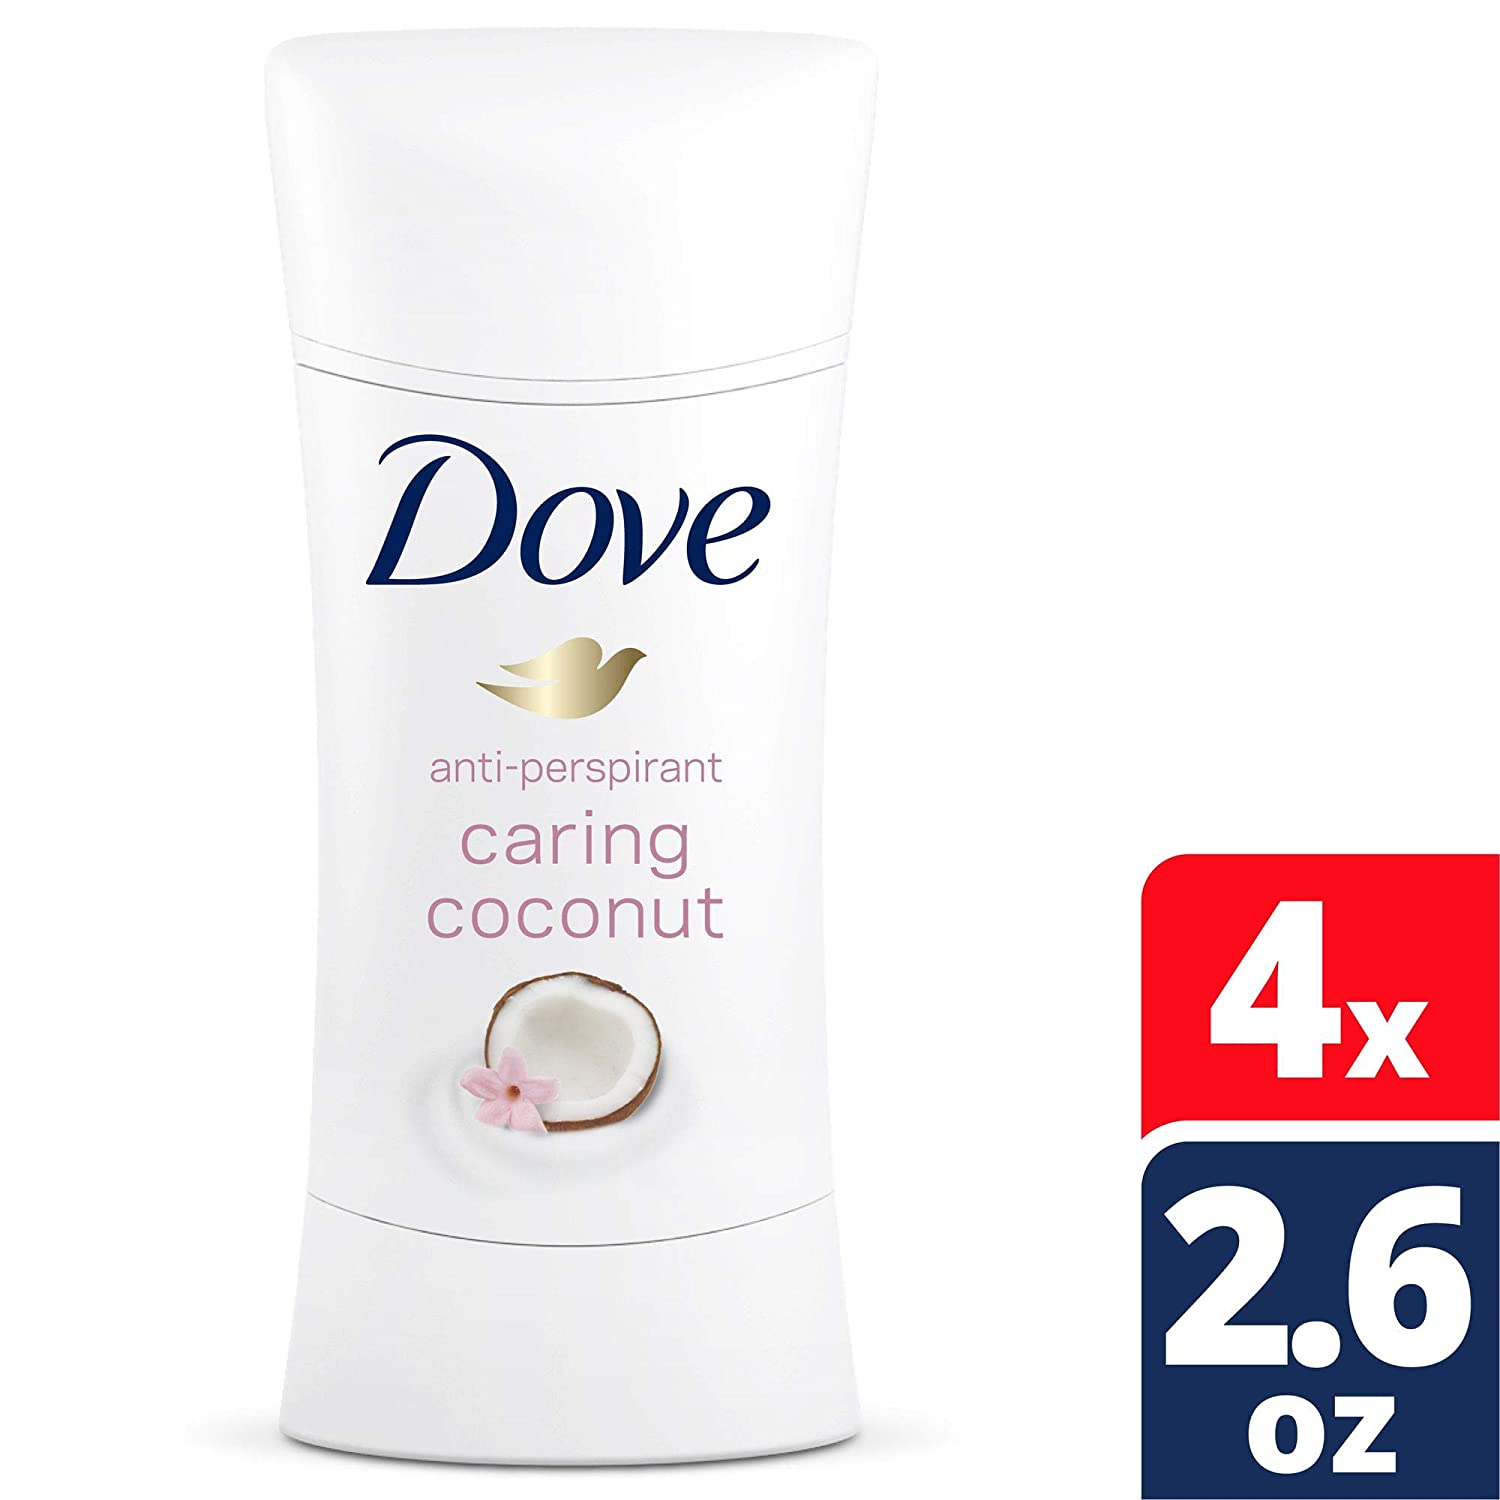 Dove Advanced Care Antiperspirant Deodorant, Caring Coconut, 2.6 Ounce (Pack of 4)